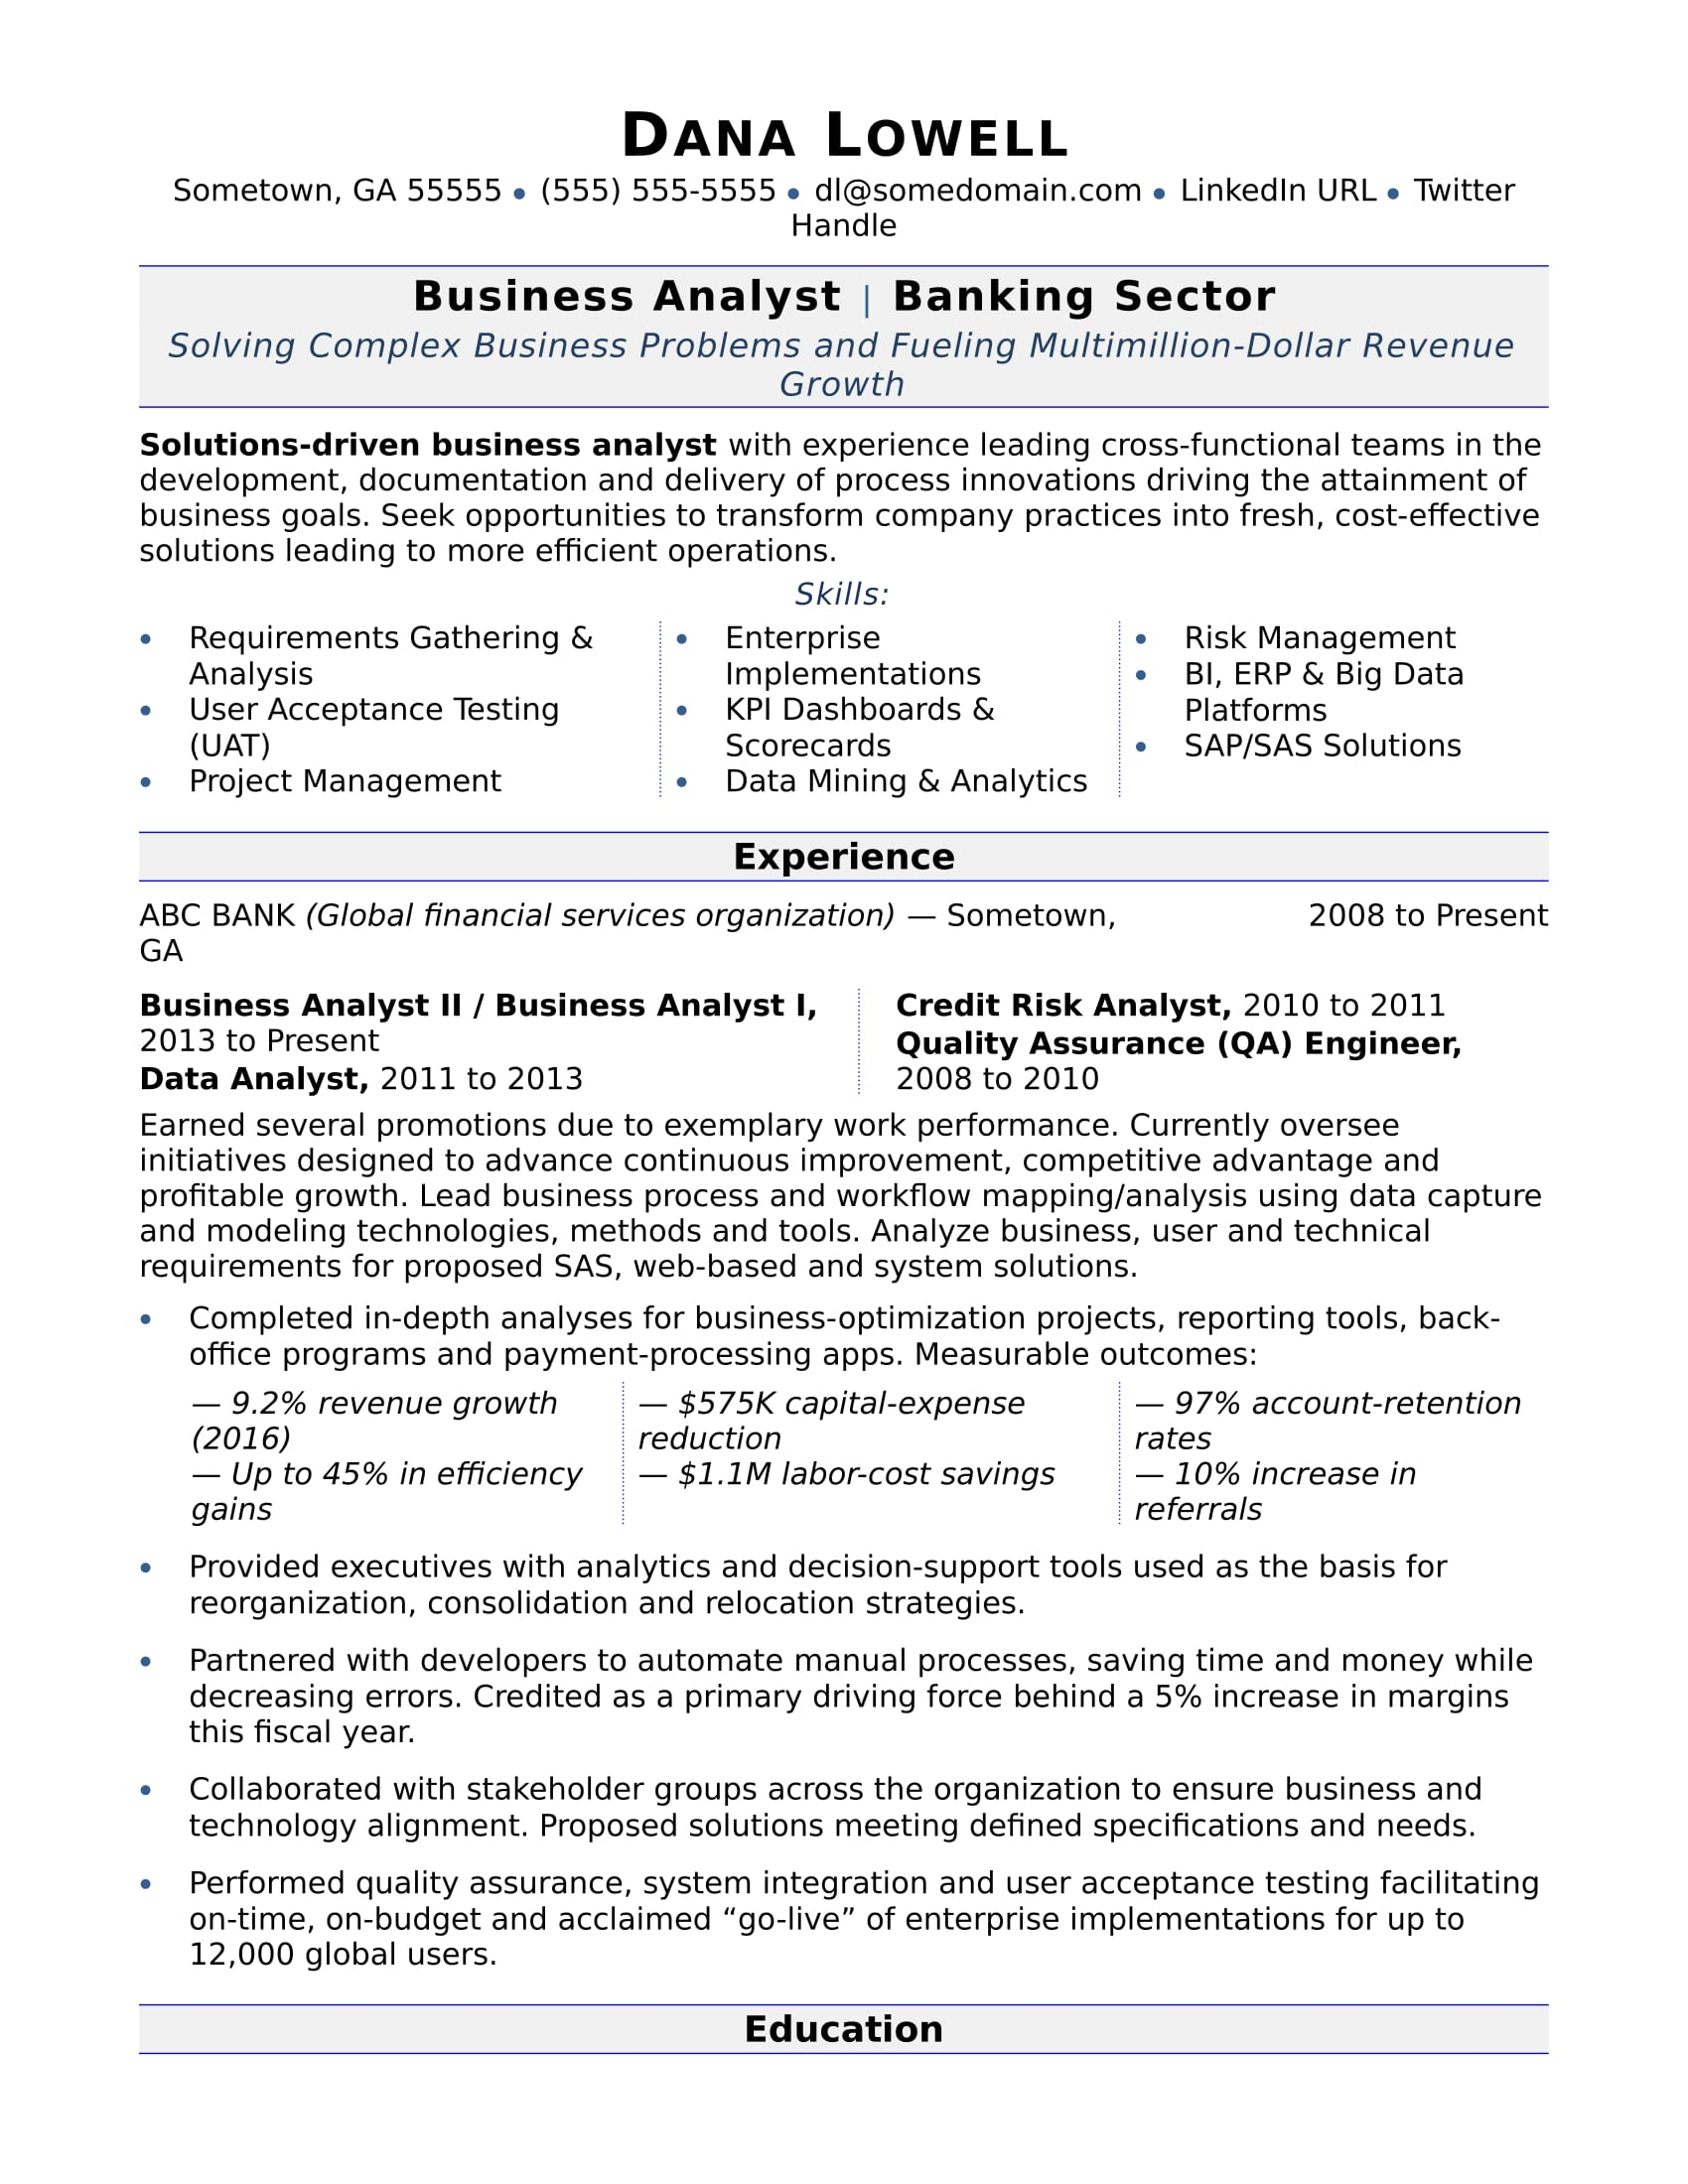 business analyst resume sample - Business Analyst Resume Format